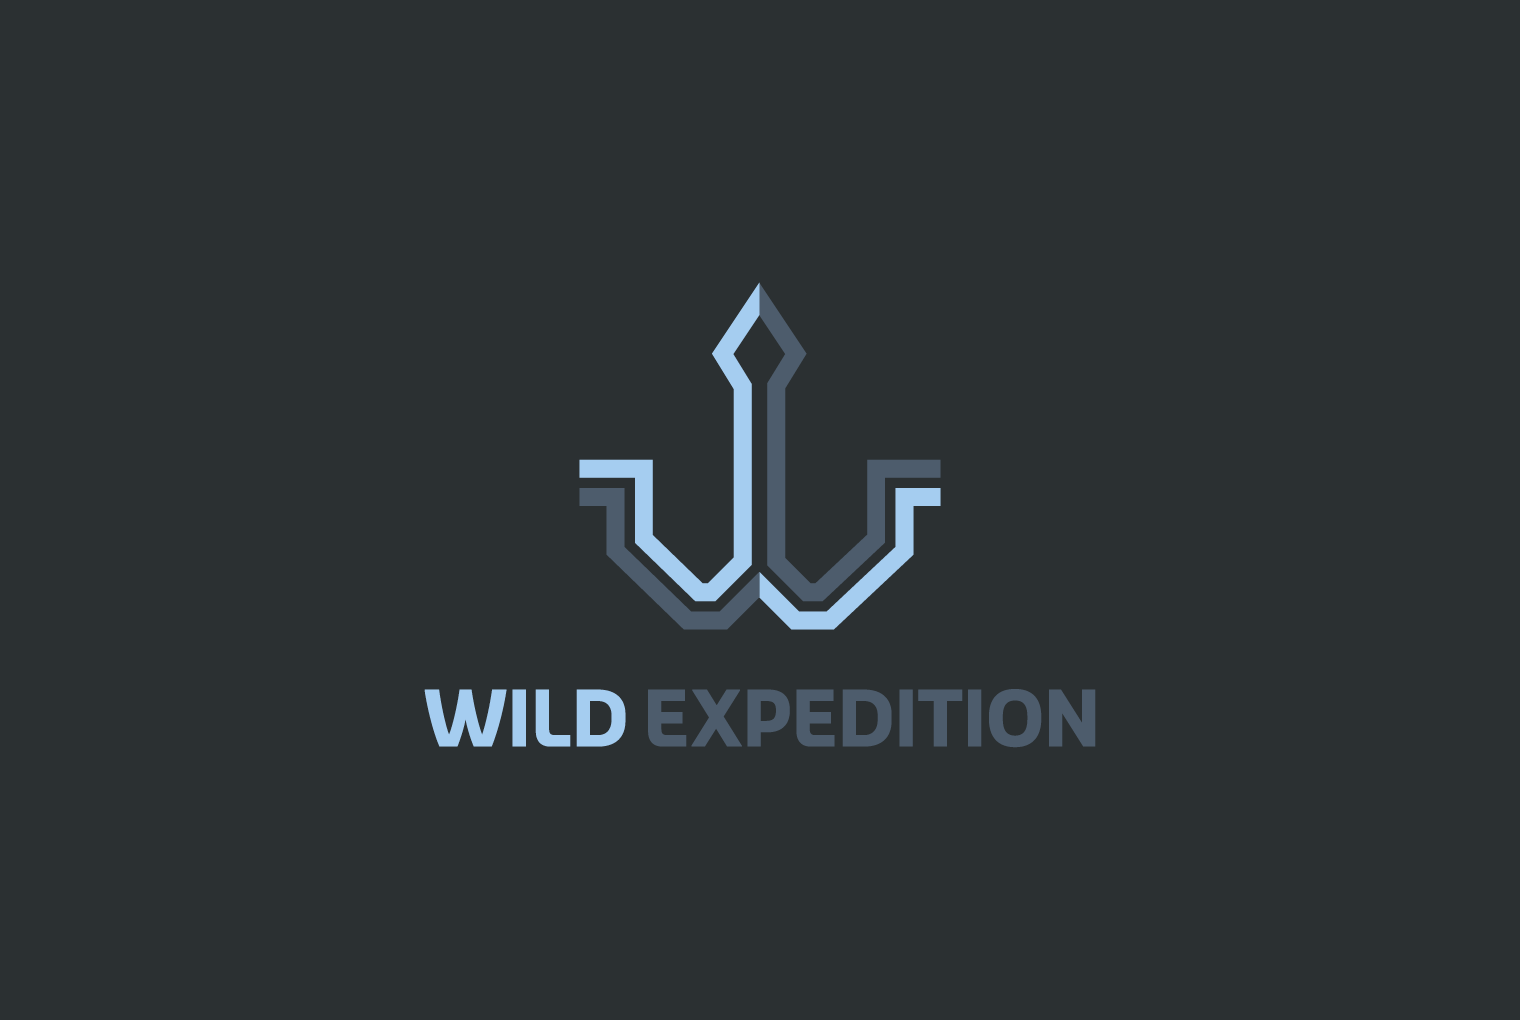 Logos_11_Wild_Expedition